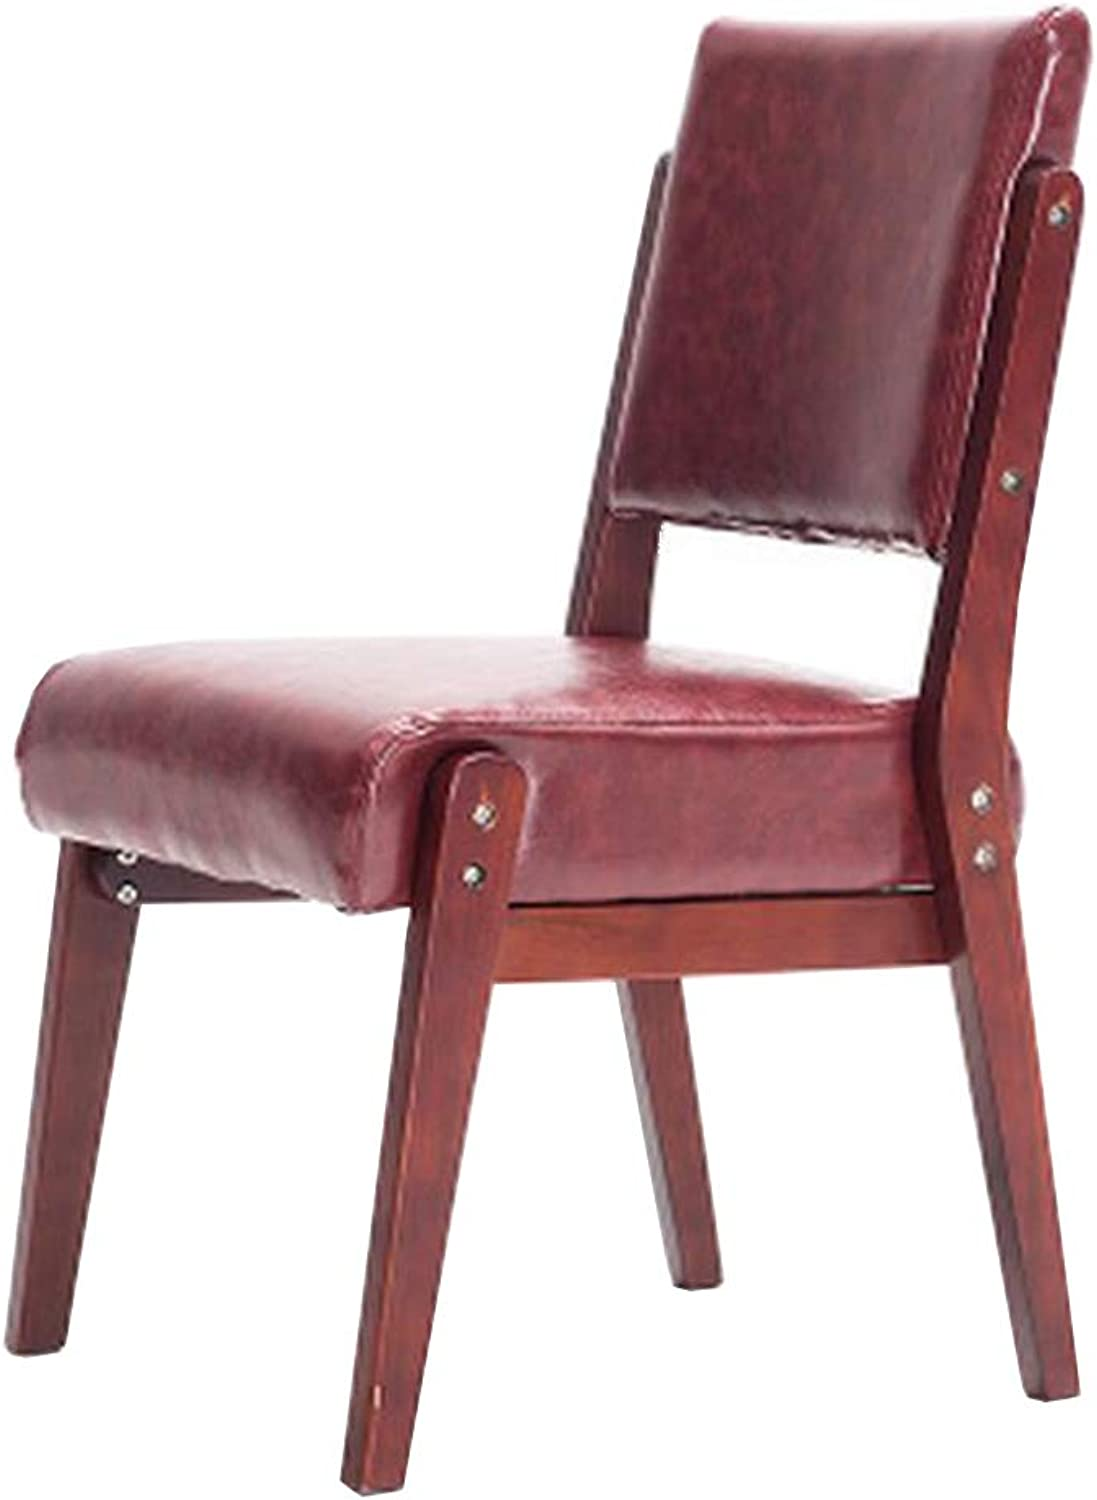 DLDL Solid wood dining chair back chair modern minimalist retro home chair (color   C)